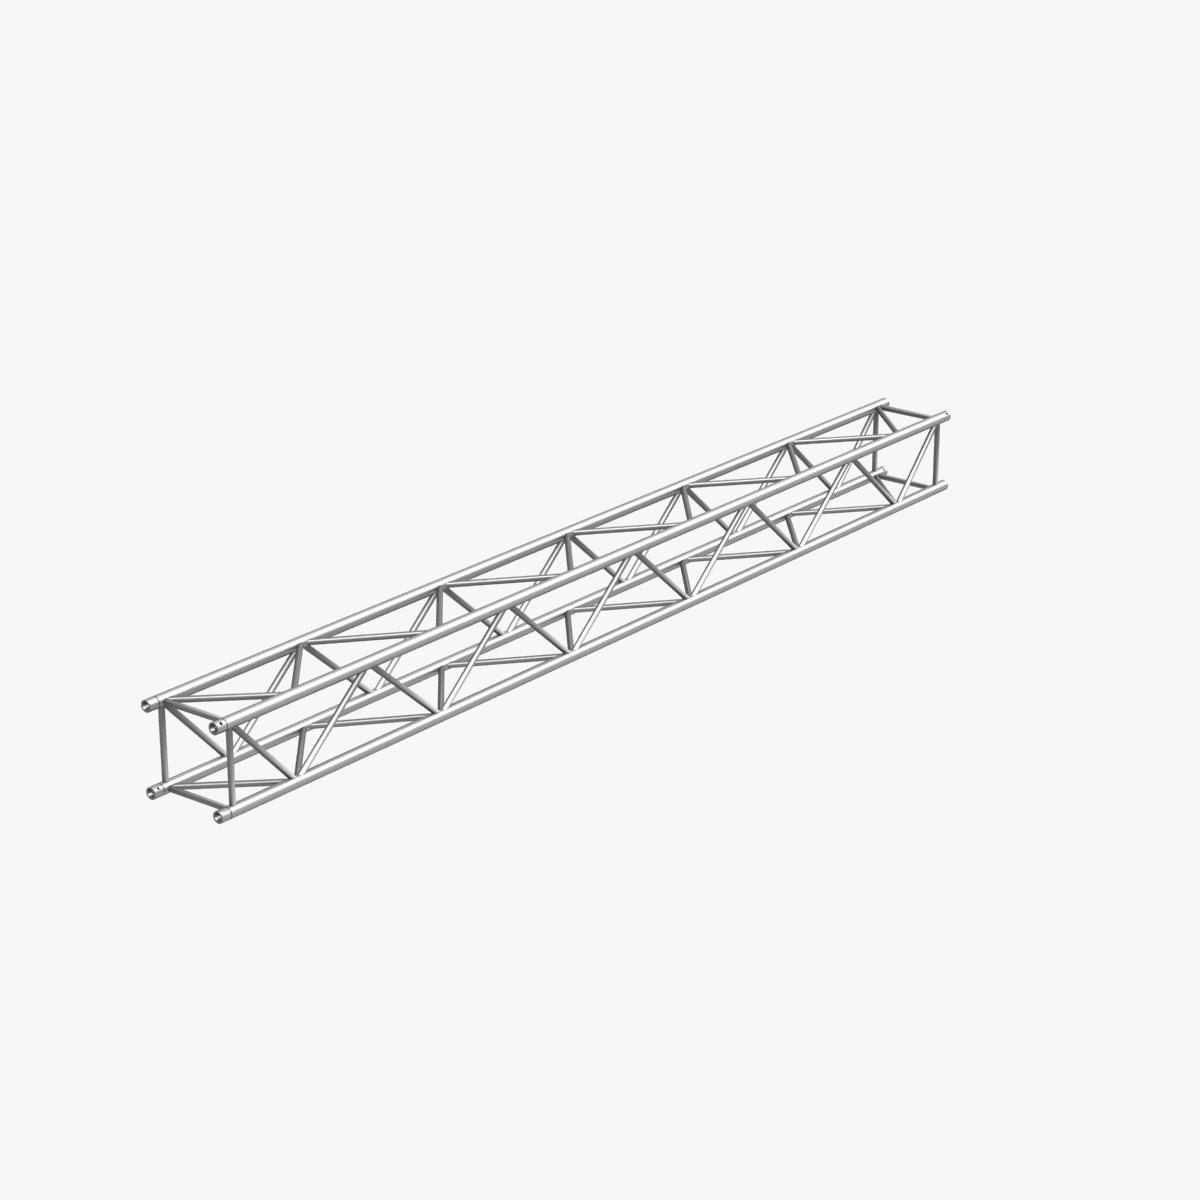 big square truss (collection 10 modular pieces) 3d model 3ds dxf fbx c4d dae  268560